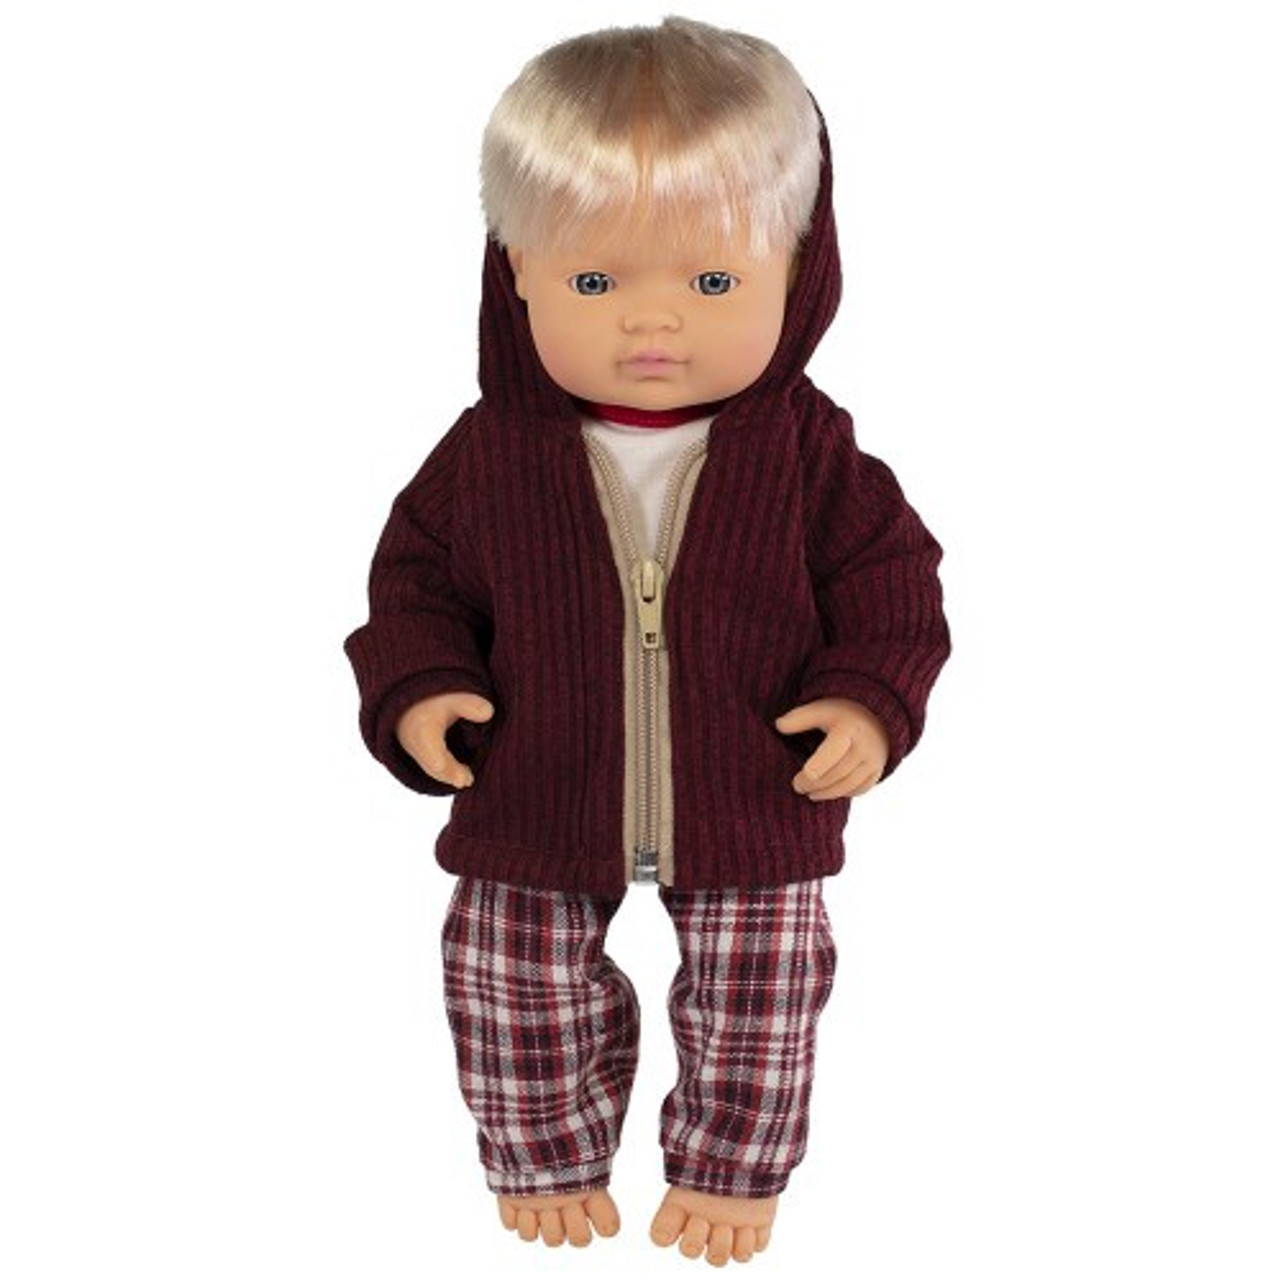 Miniland Doll Anatomically Correct Baby & Outfit Boxed 38 cm (UNDRESSED) - Caucasian Boy | Baby Barn Discounts